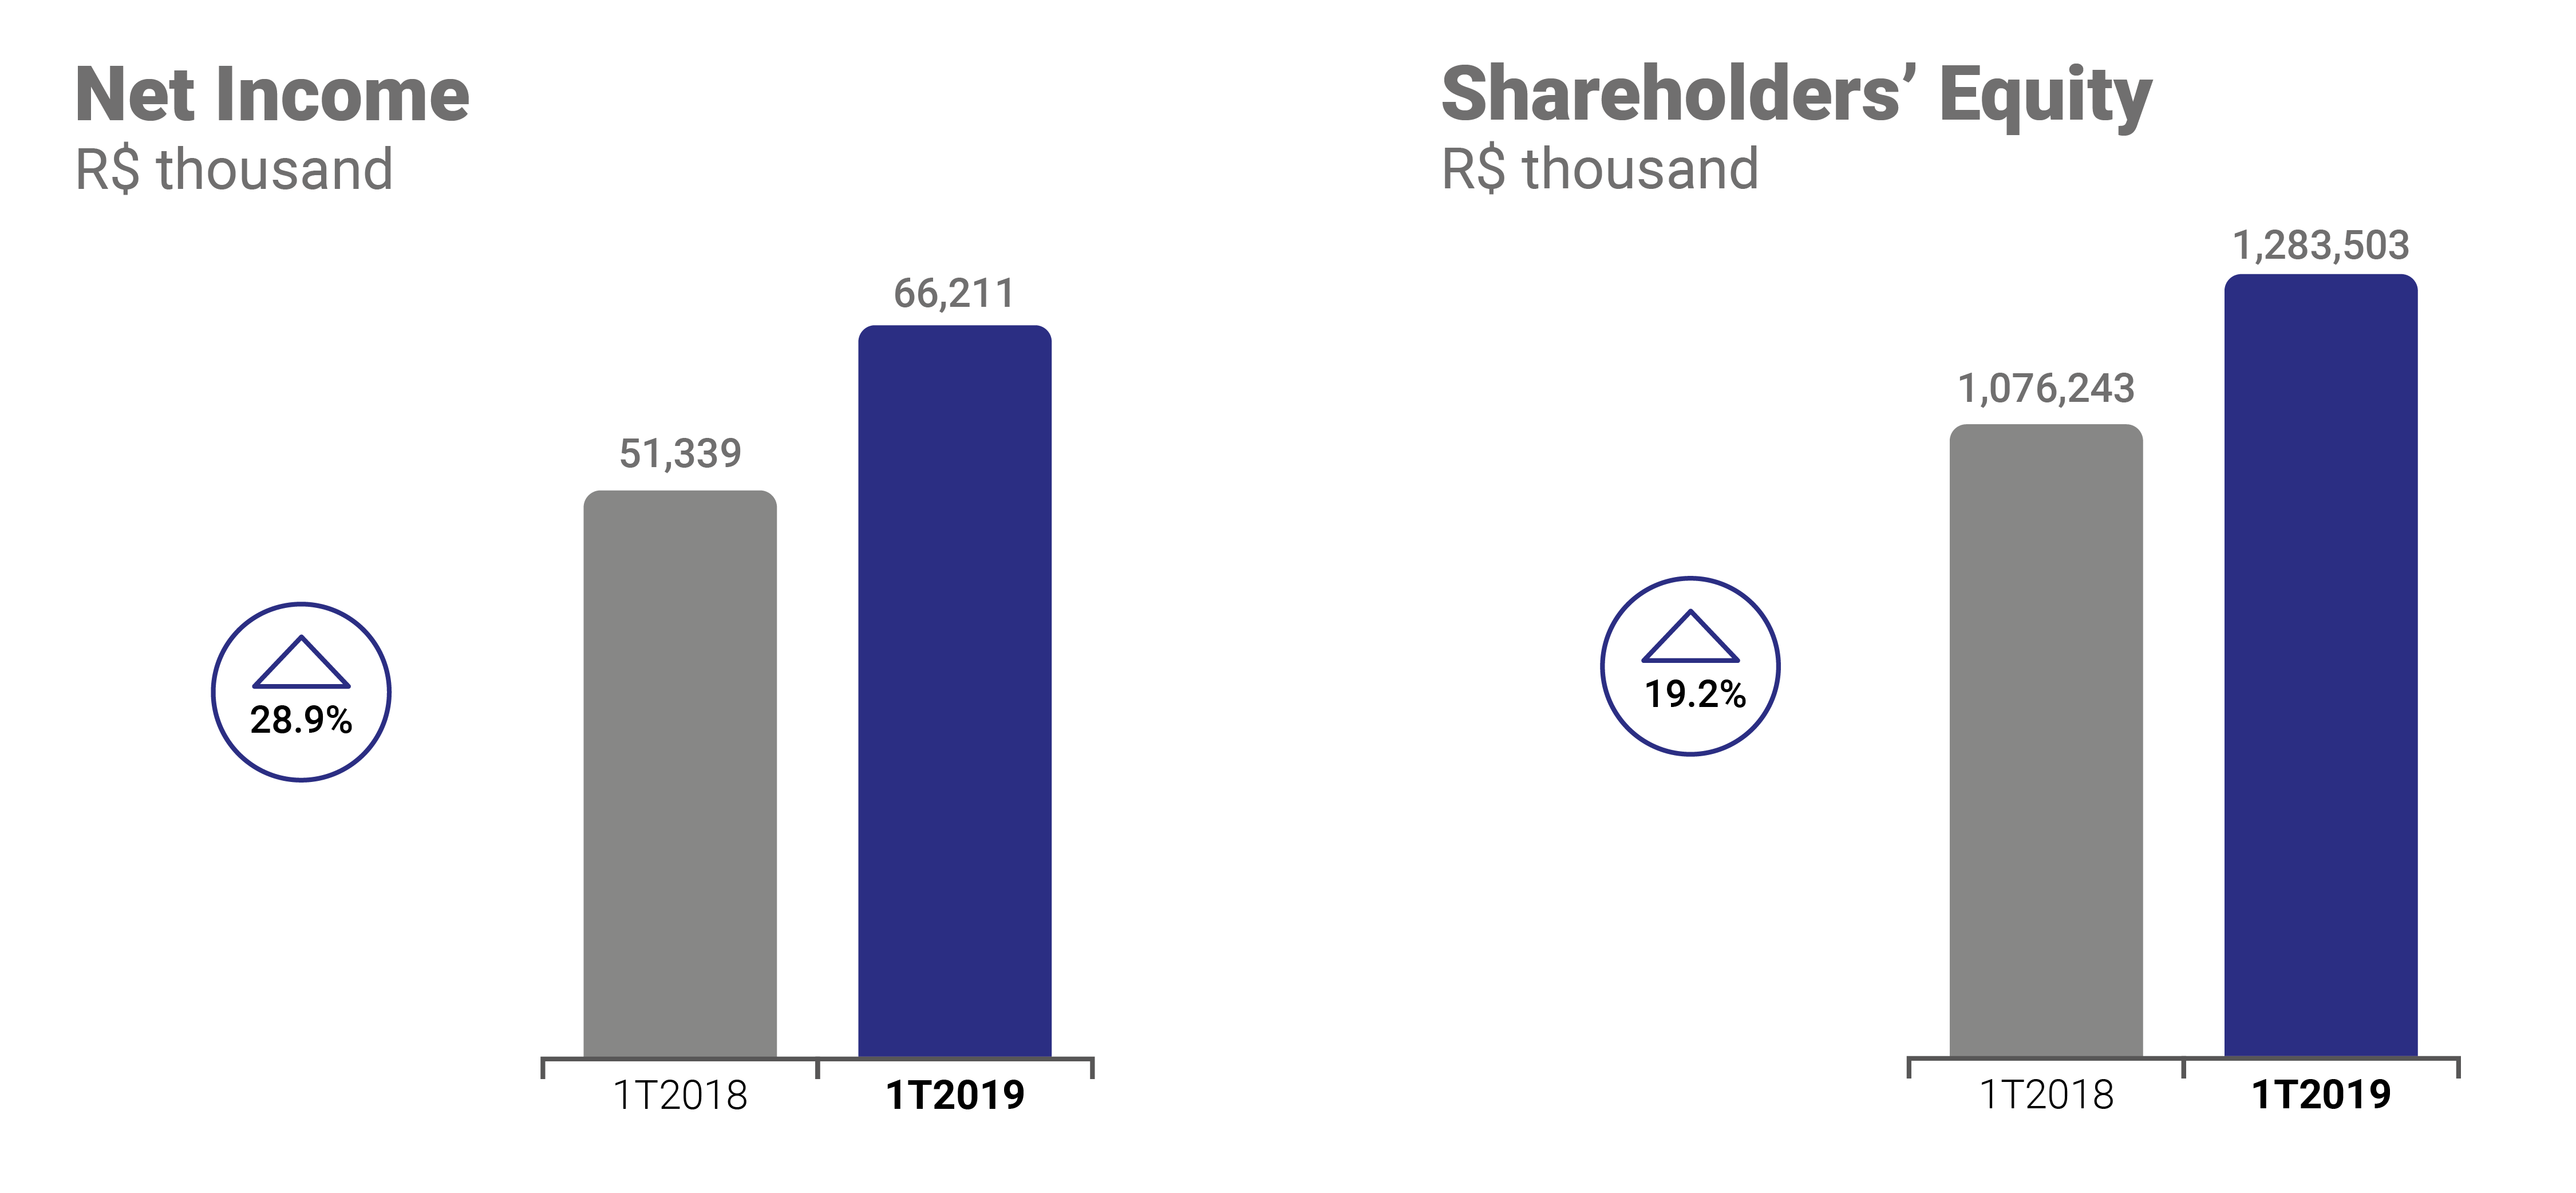 Net Income and Shareholders' equity